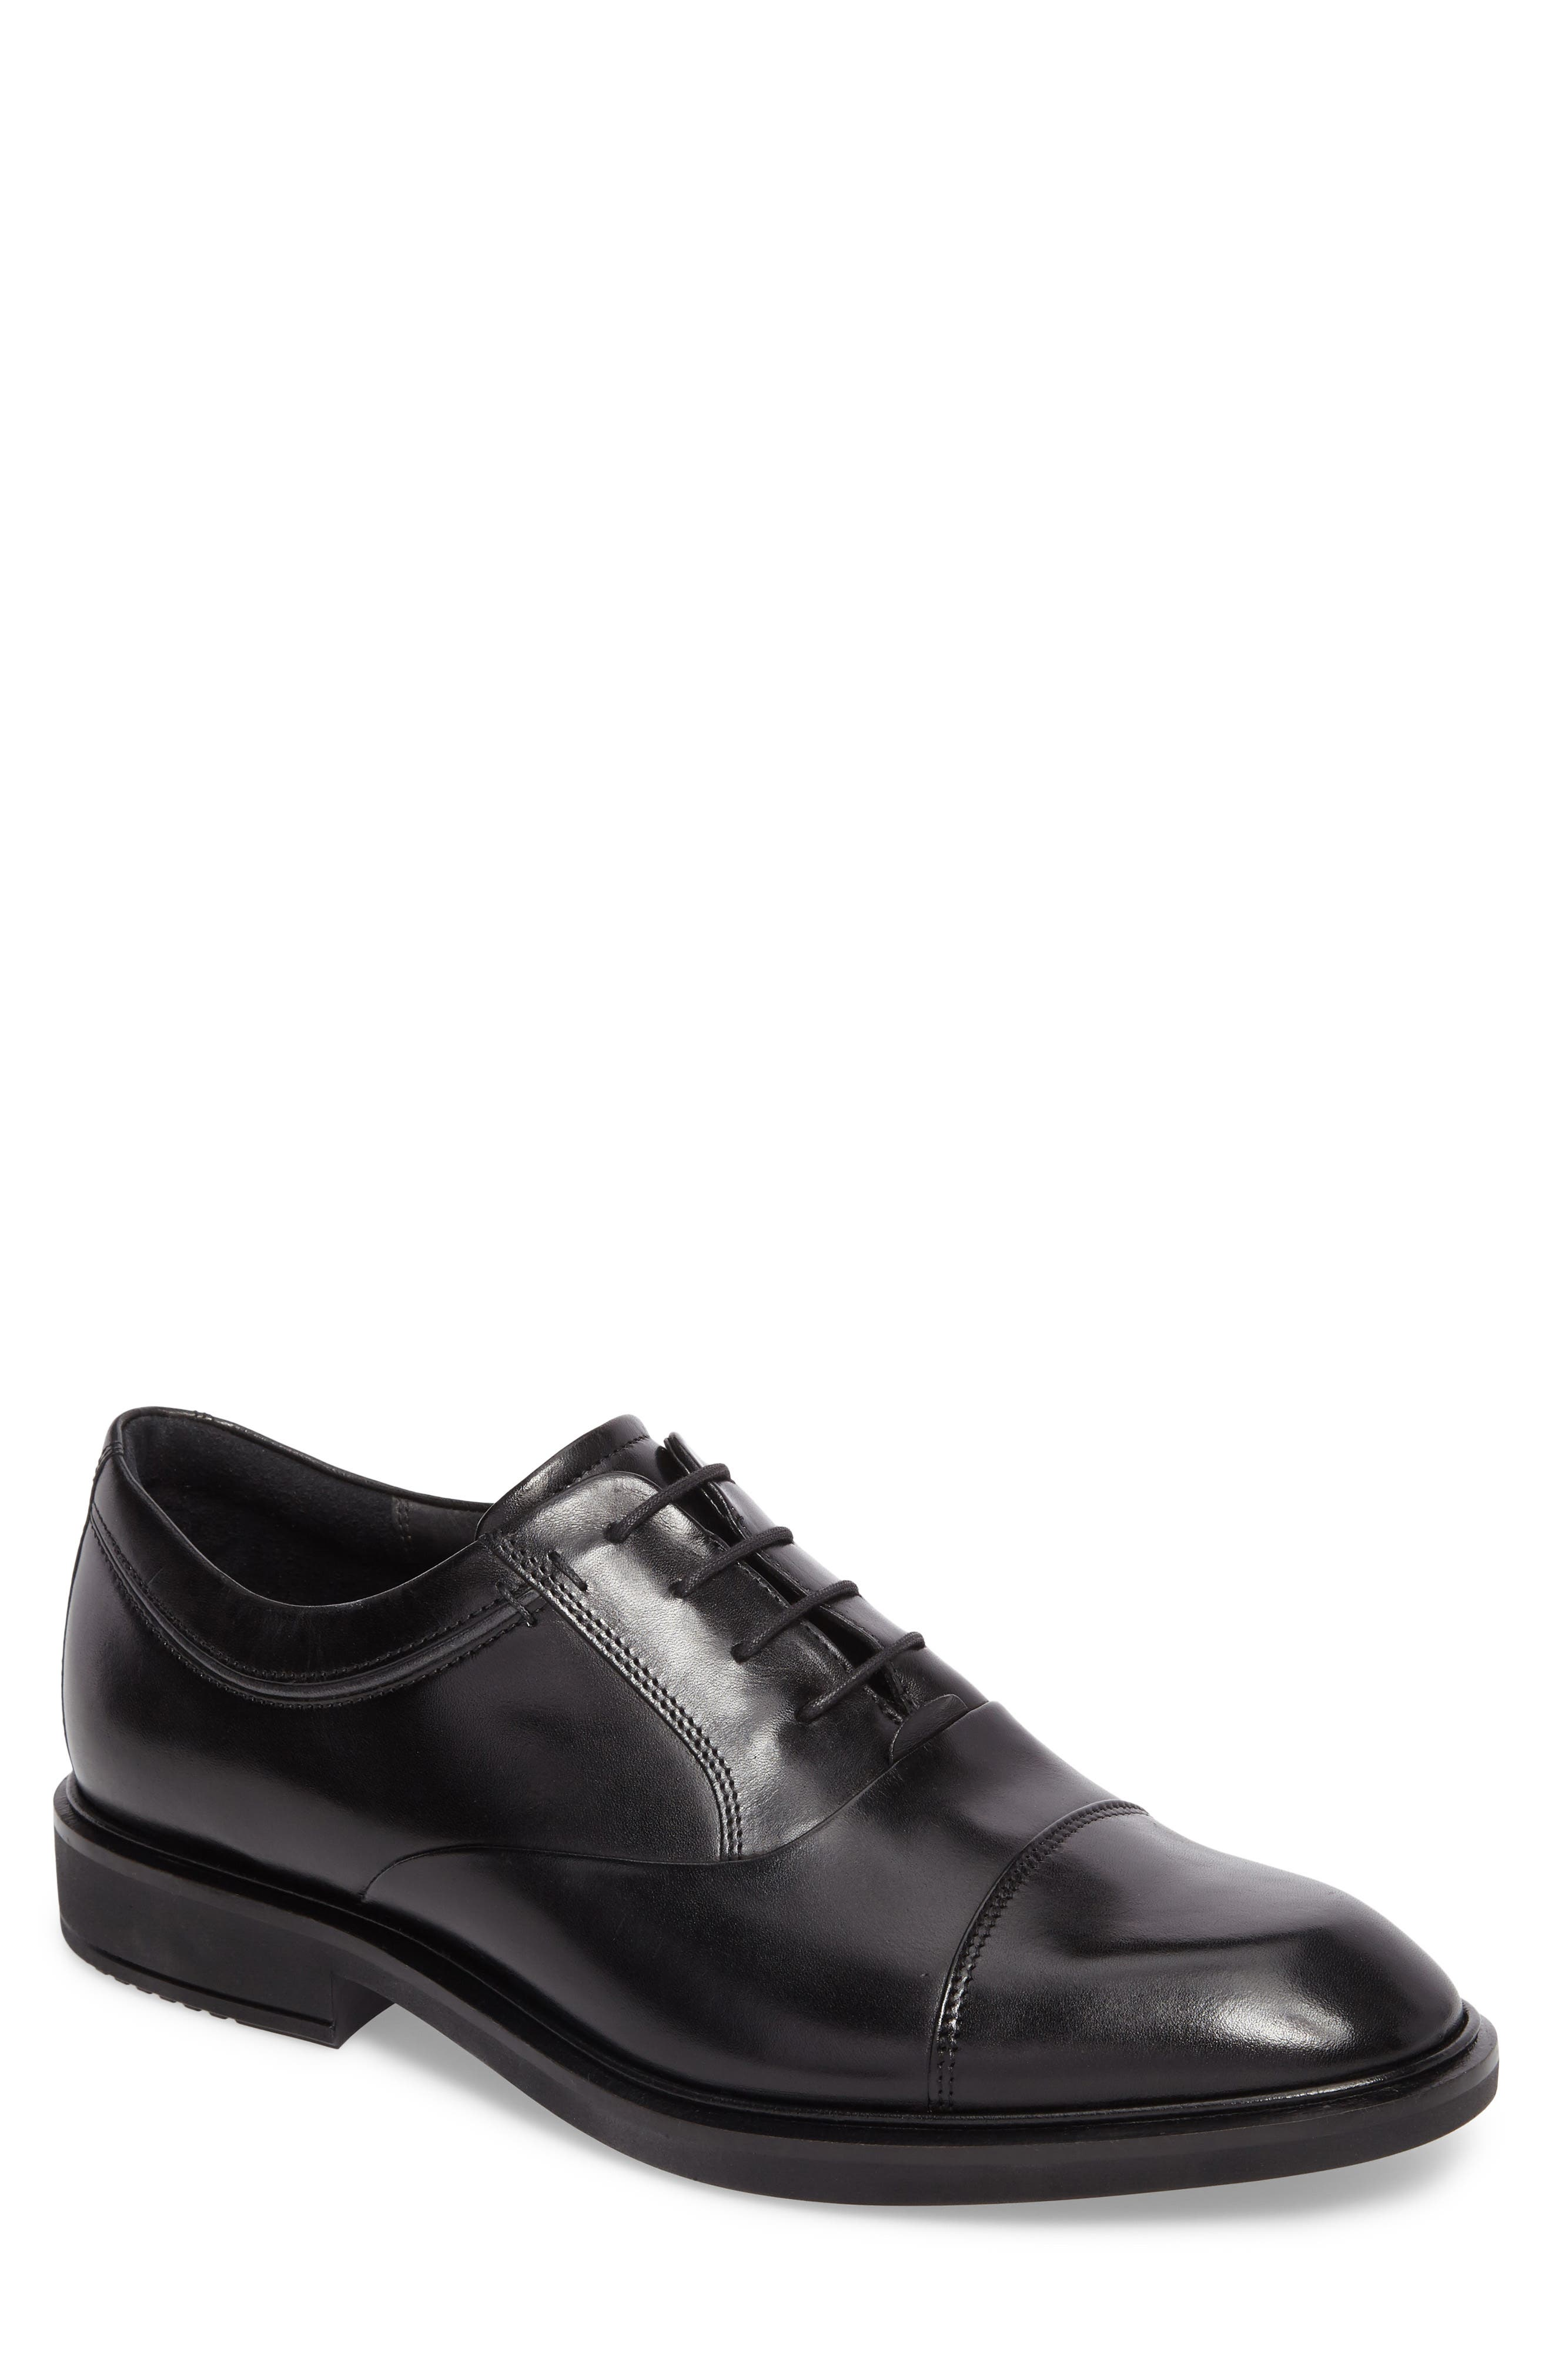 Vitrus II Cap Toe Oxford,                         Main,                         color, BLACK LEATHER